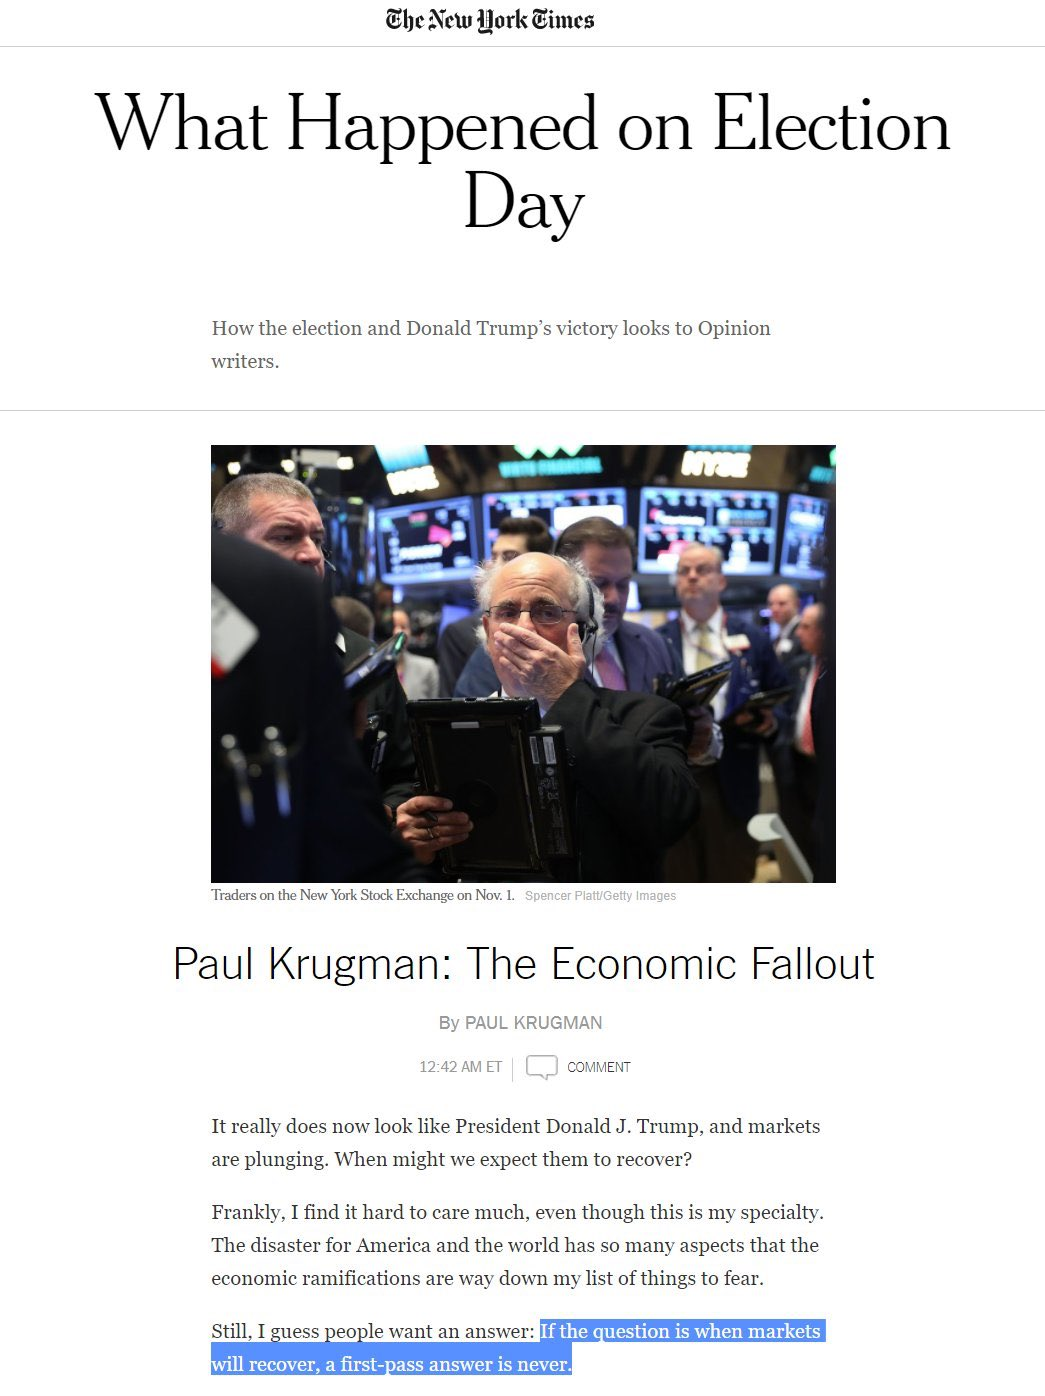 Greatest story of the year: booming @realDonaldTrump economy.  Worst prediction for the year: https://t.co/b6PGzp48zM